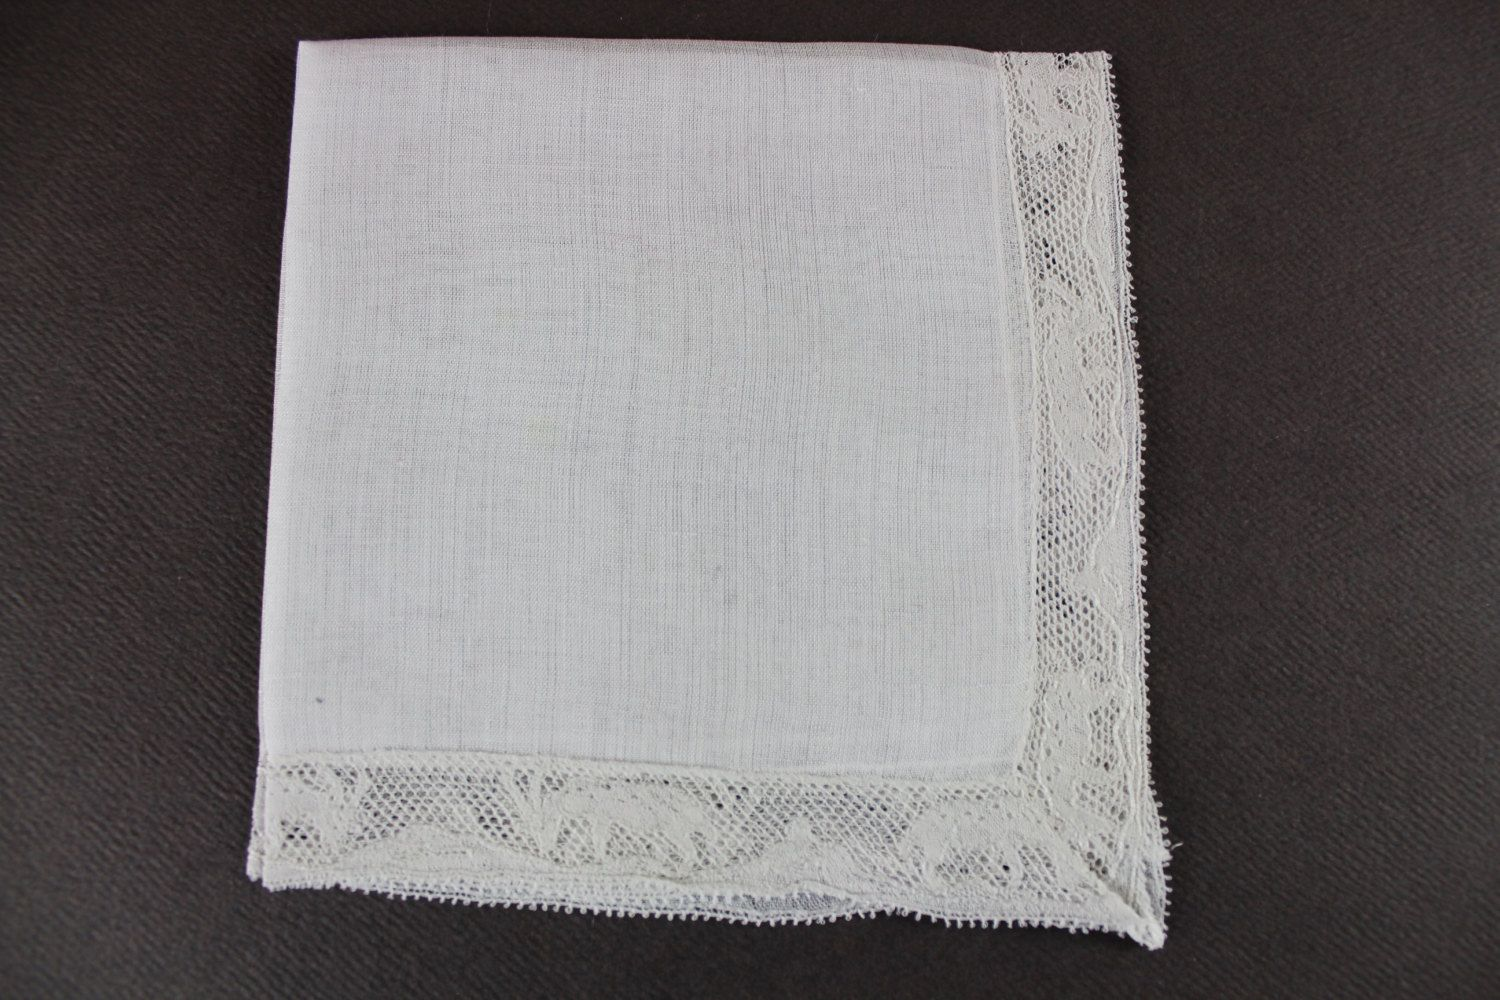 White Lace edged/animal motif/ Vintage Handkerchief H-120 by EBMNewhaven on Etsy